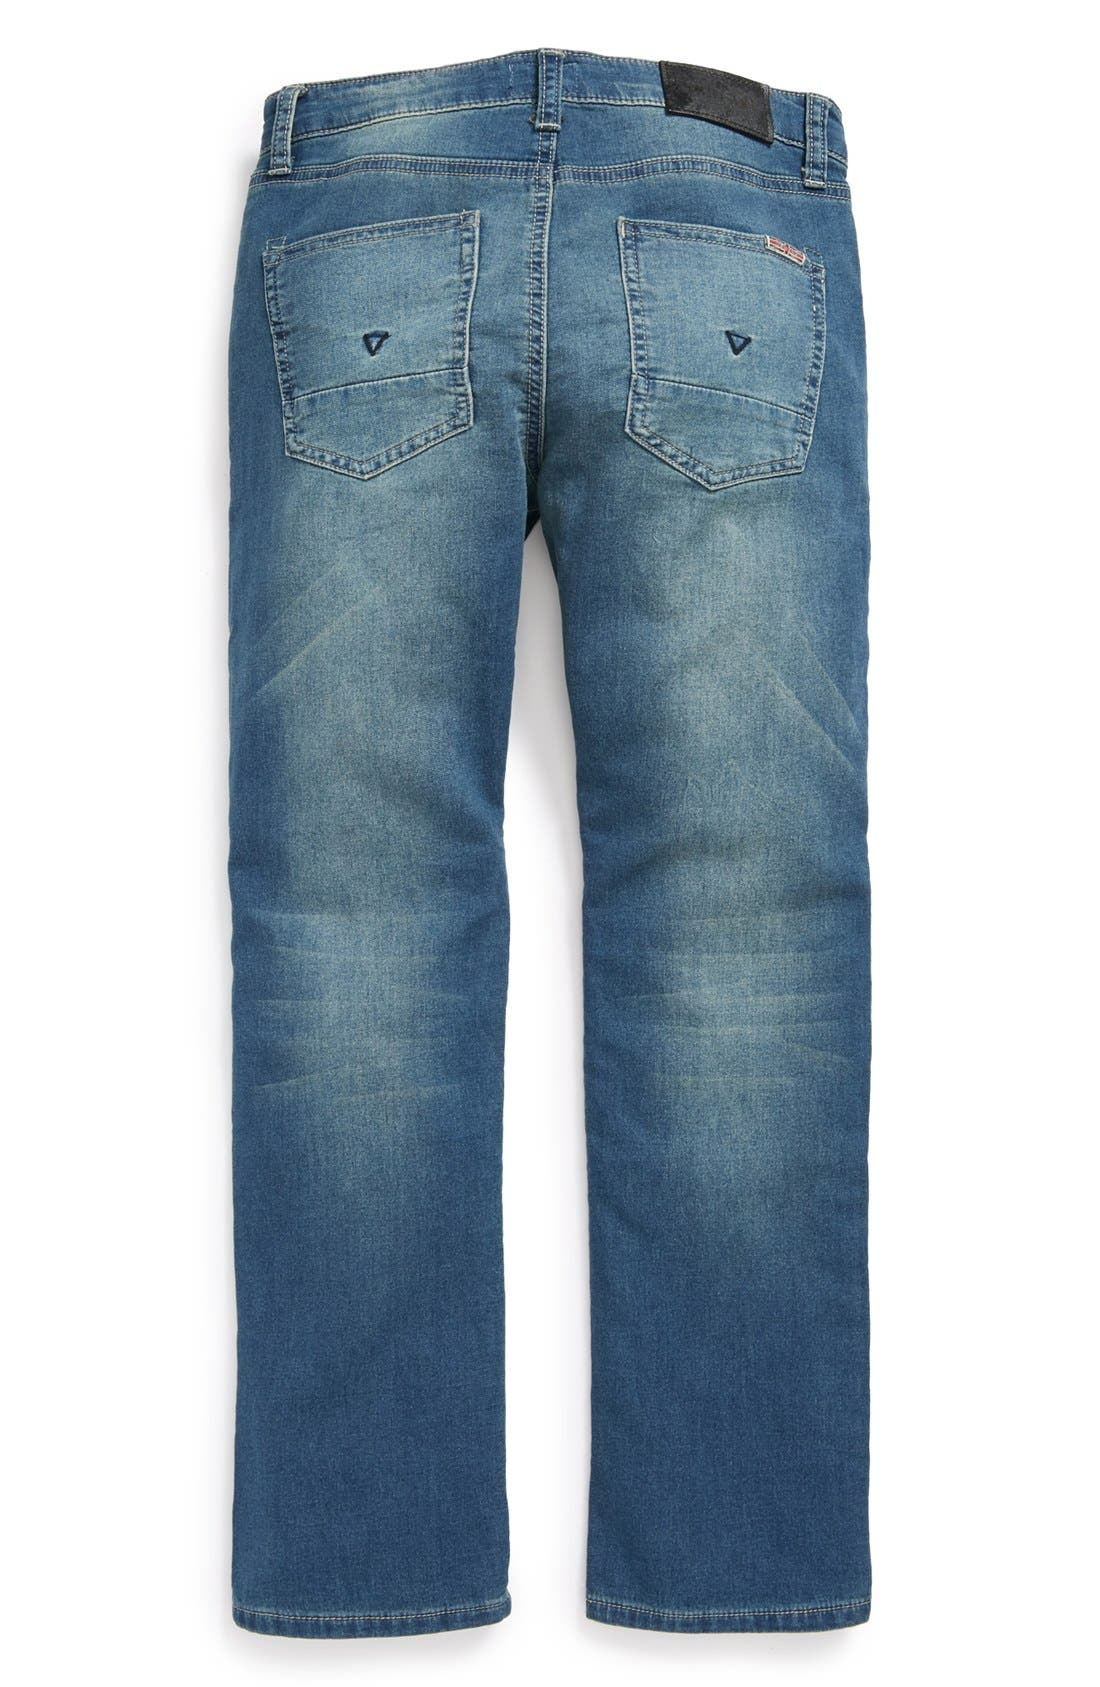 Alternate Image 1 Selected - Hudson Kids 'Parker' Straight Leg Jeans (Little Boys)